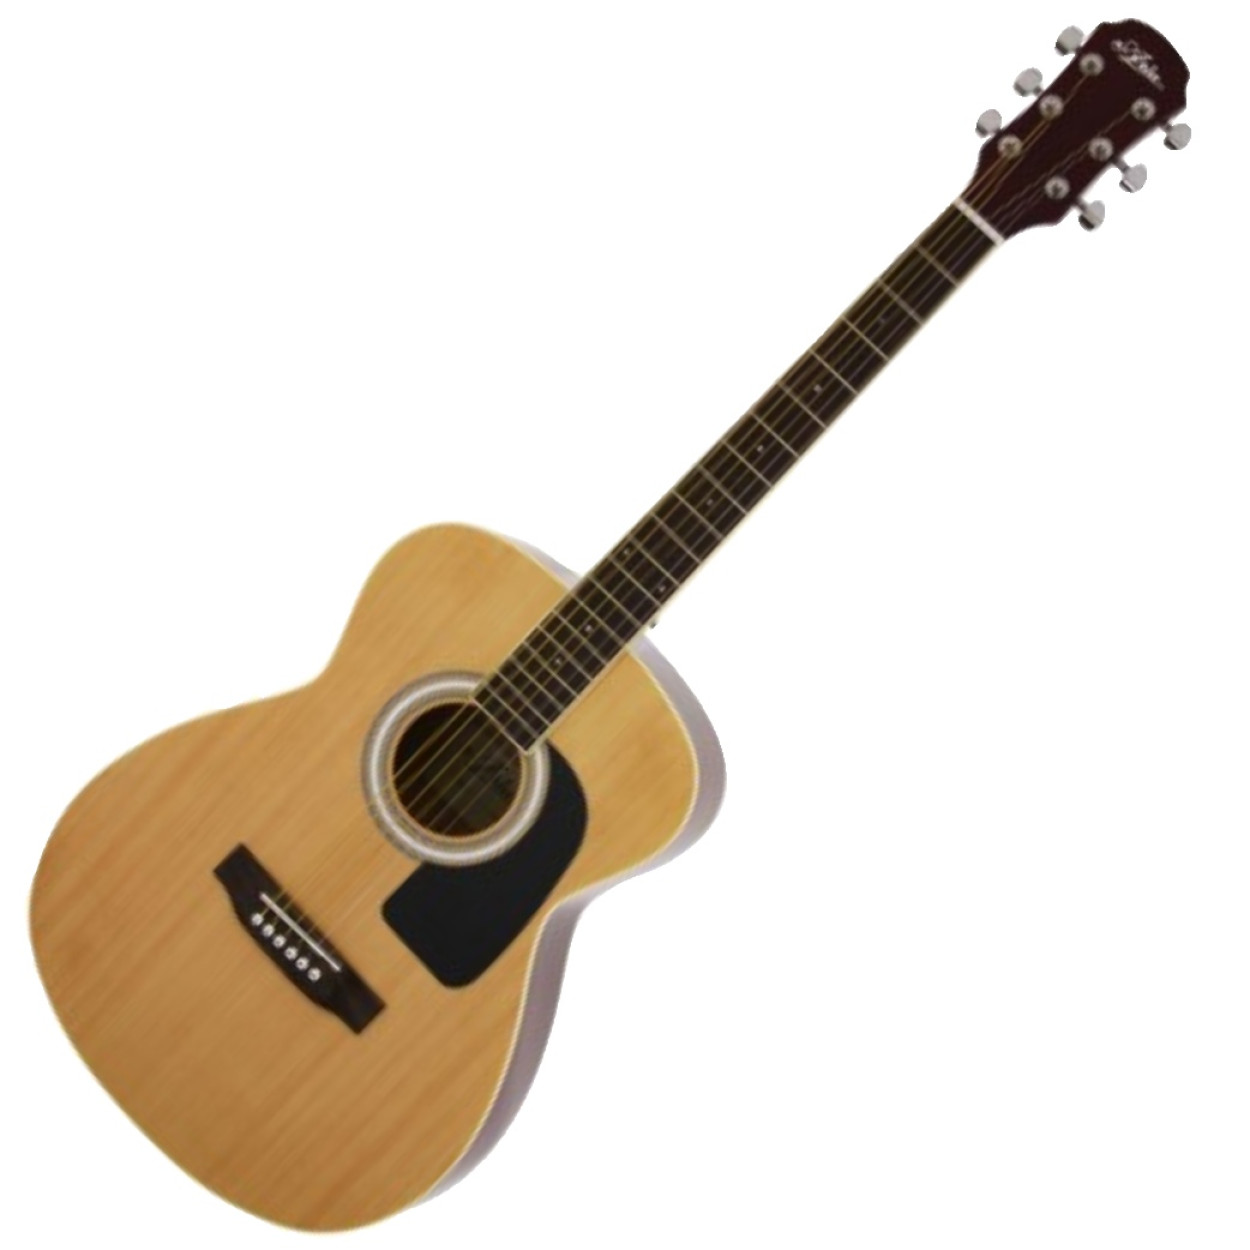 Aria AF15N Acoustic Guitar available at Penarth Music Centre